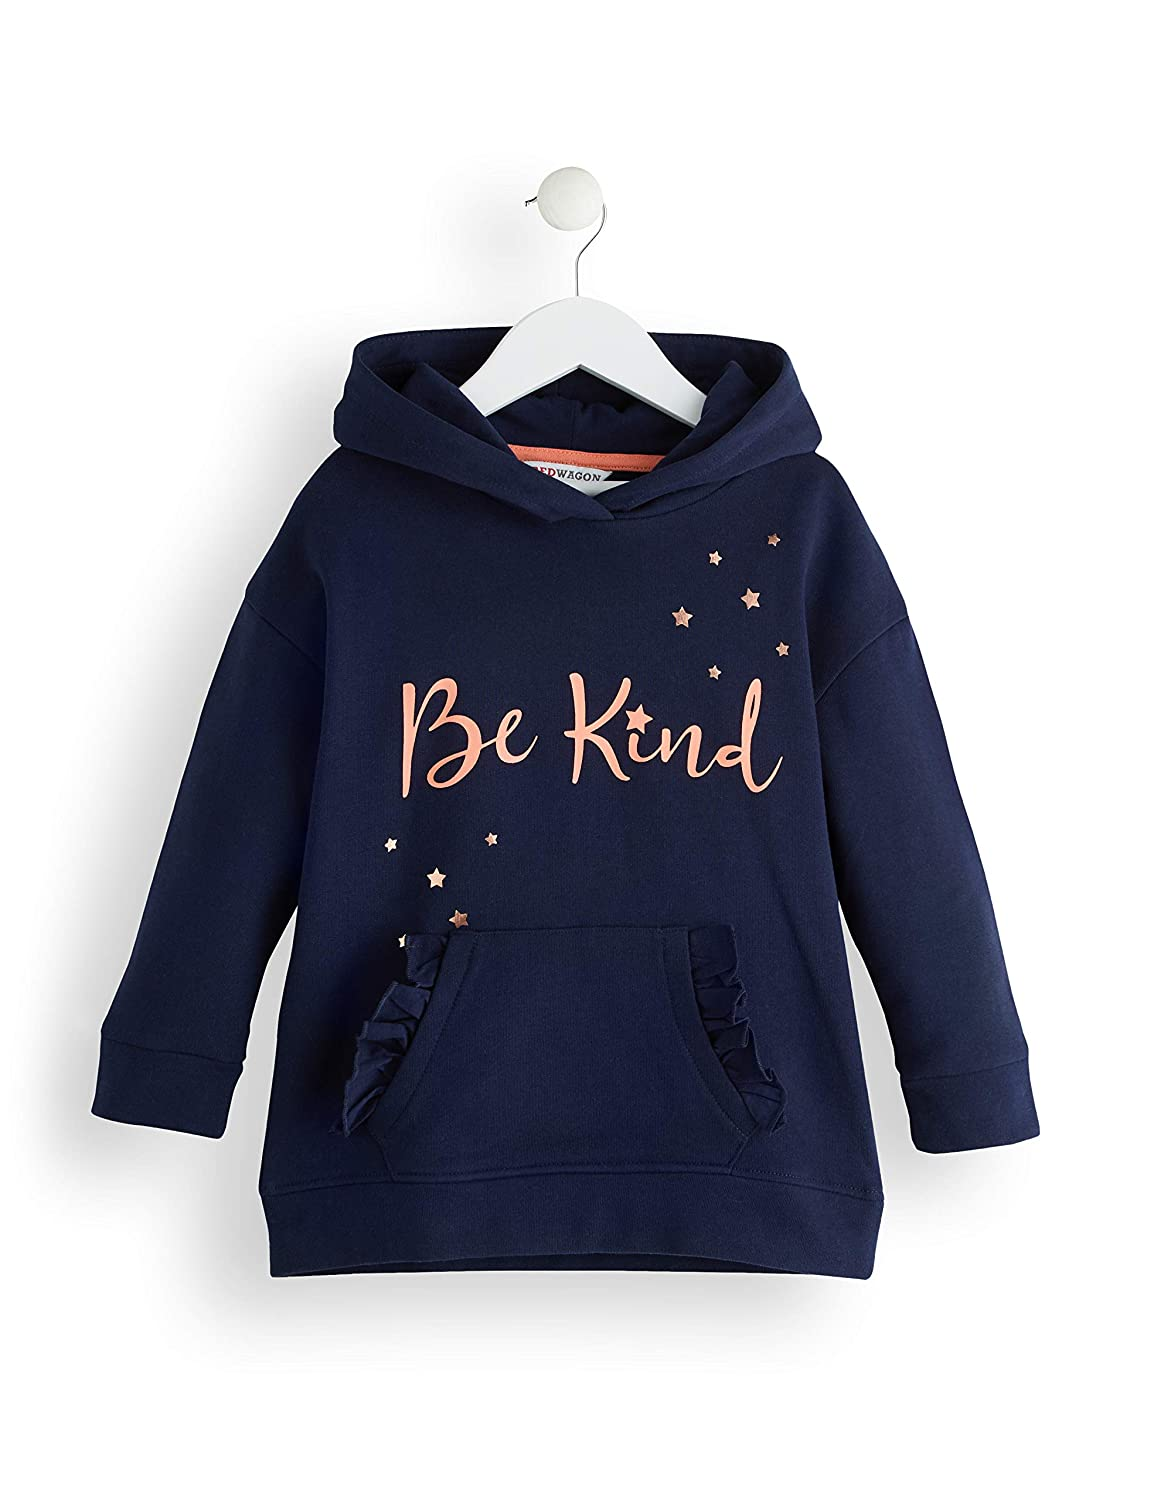 RED WAGON Girls Rwg-044a Hoodie